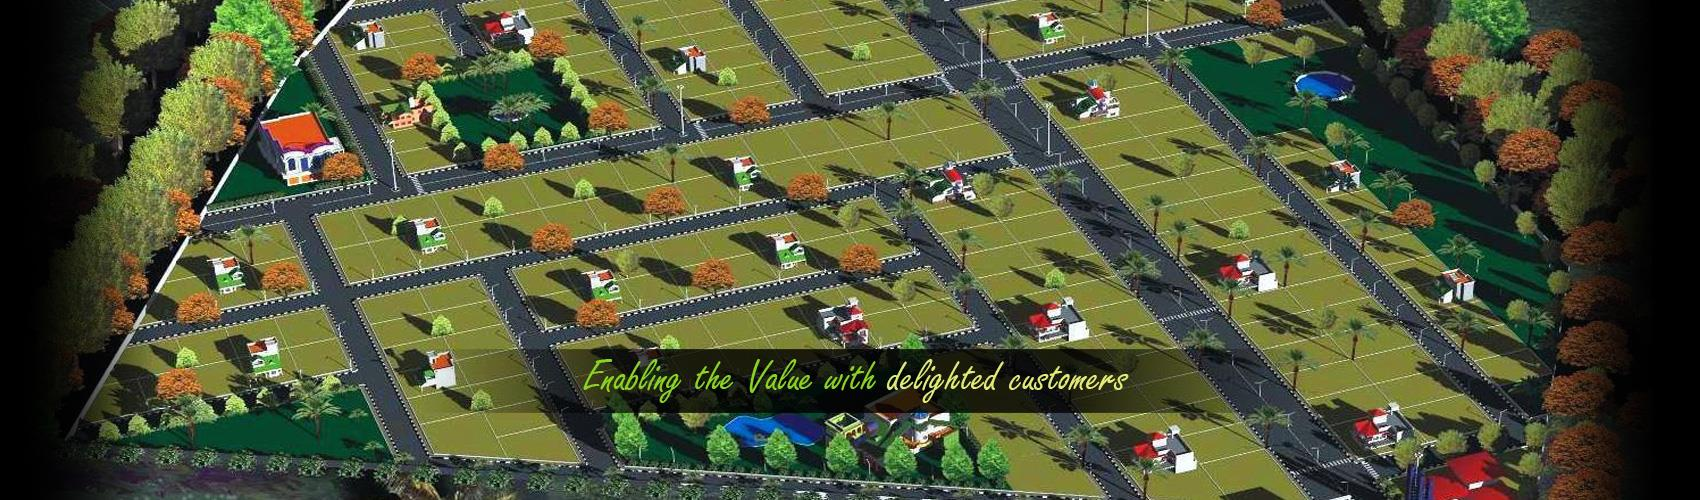 villa plots in hoskote bangalore villa sites in whitefield bangalore - by Anish Projects, Bangalore